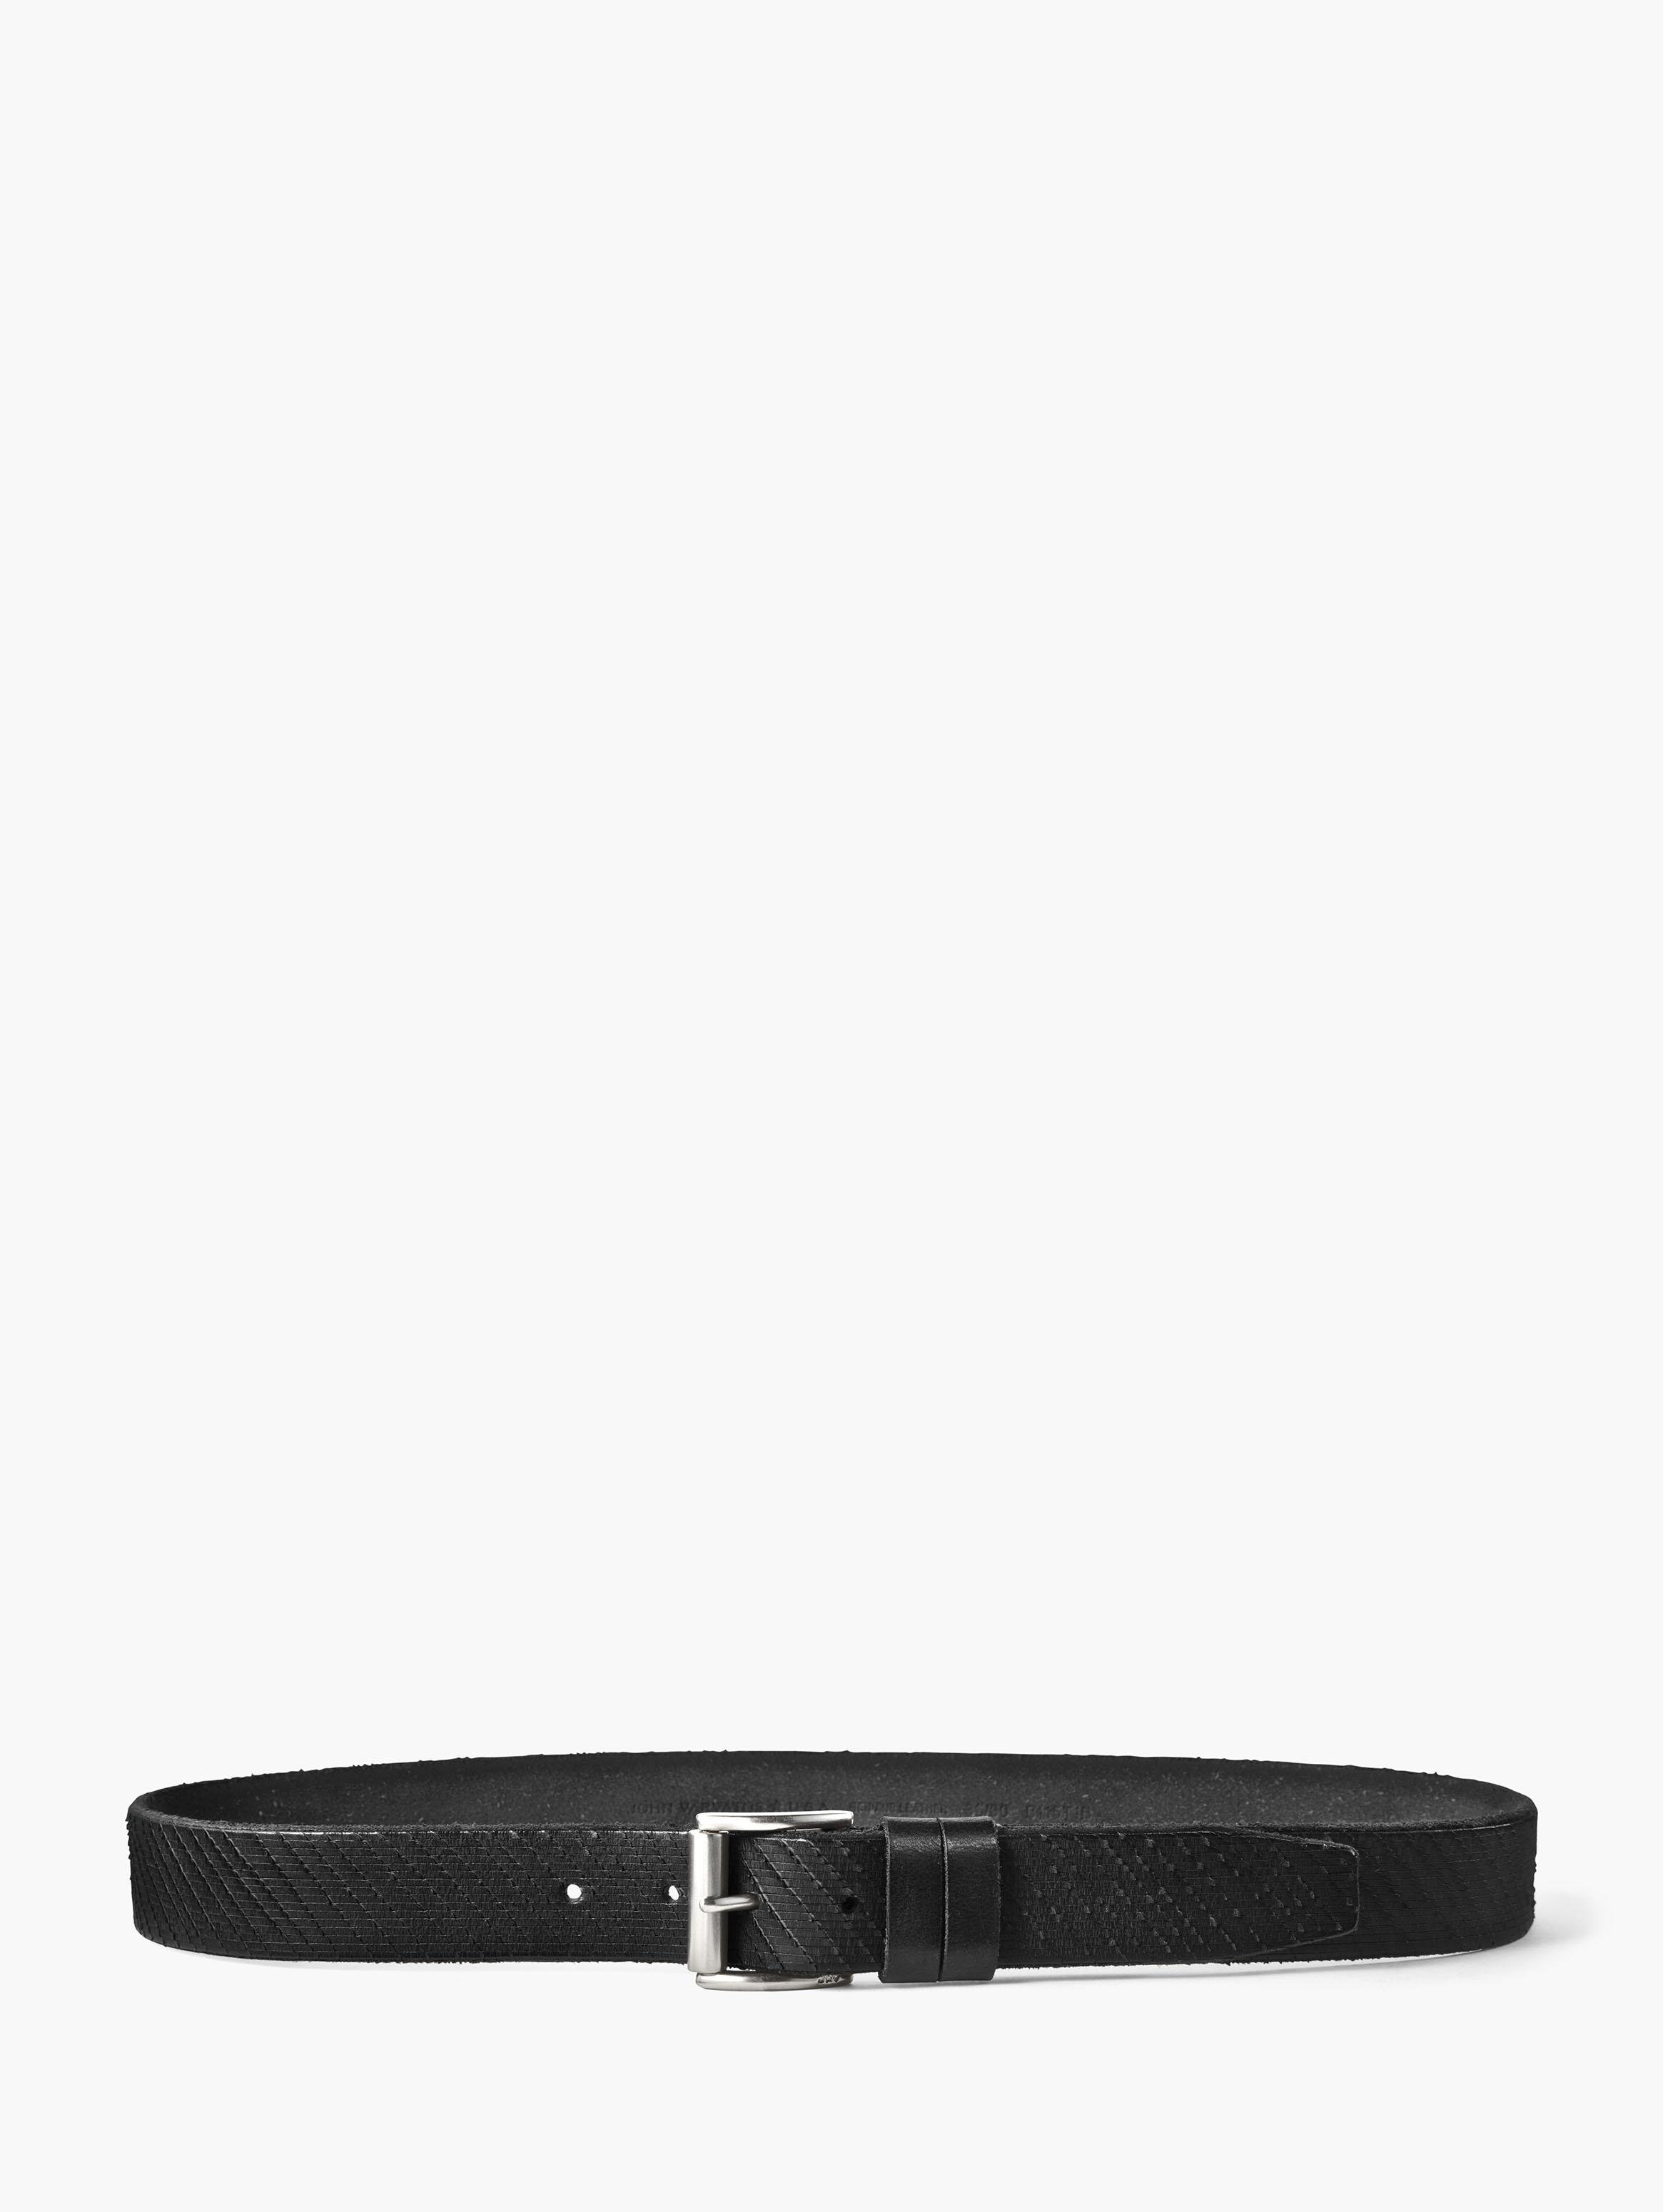 Double Loop Textured Leather Belt